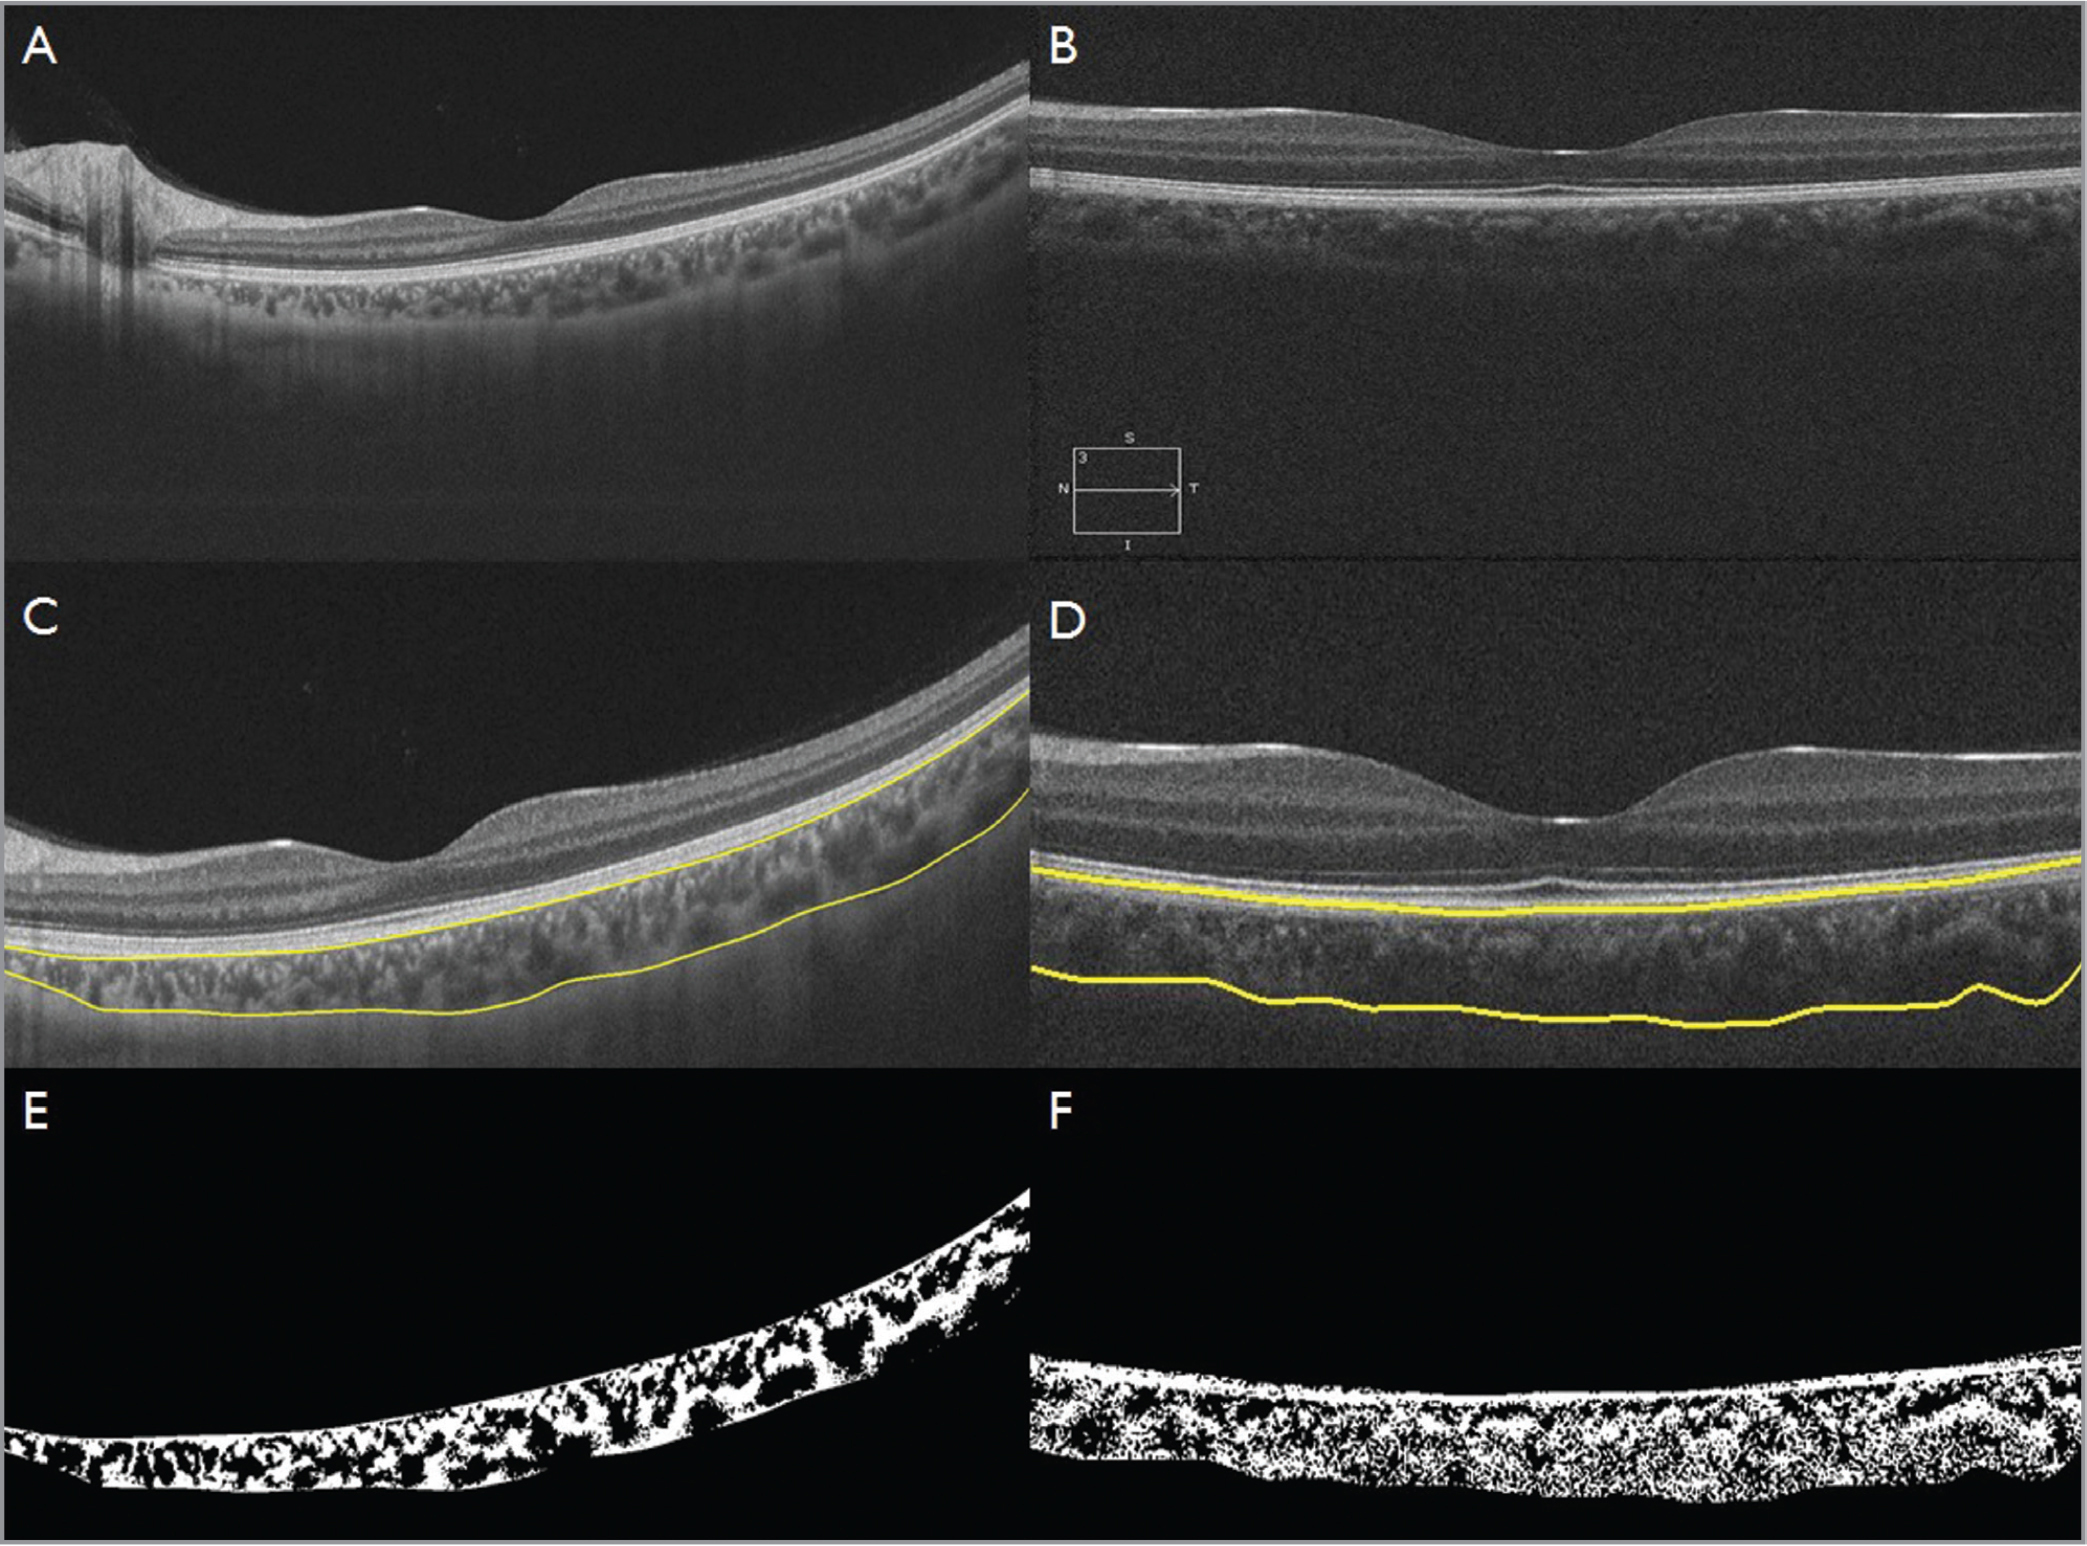 Optical coherence tomography (OCT) of the left eye of a 27-year-old male using swept-source OCT (A) and spectral-domain OCT (B), respectively. (C, D) Choroid segmentation using automated algorithm. (E, F) Binarized images, which were used to calculate the choroidal vascularity index (0.512 and 0.479, respectively)